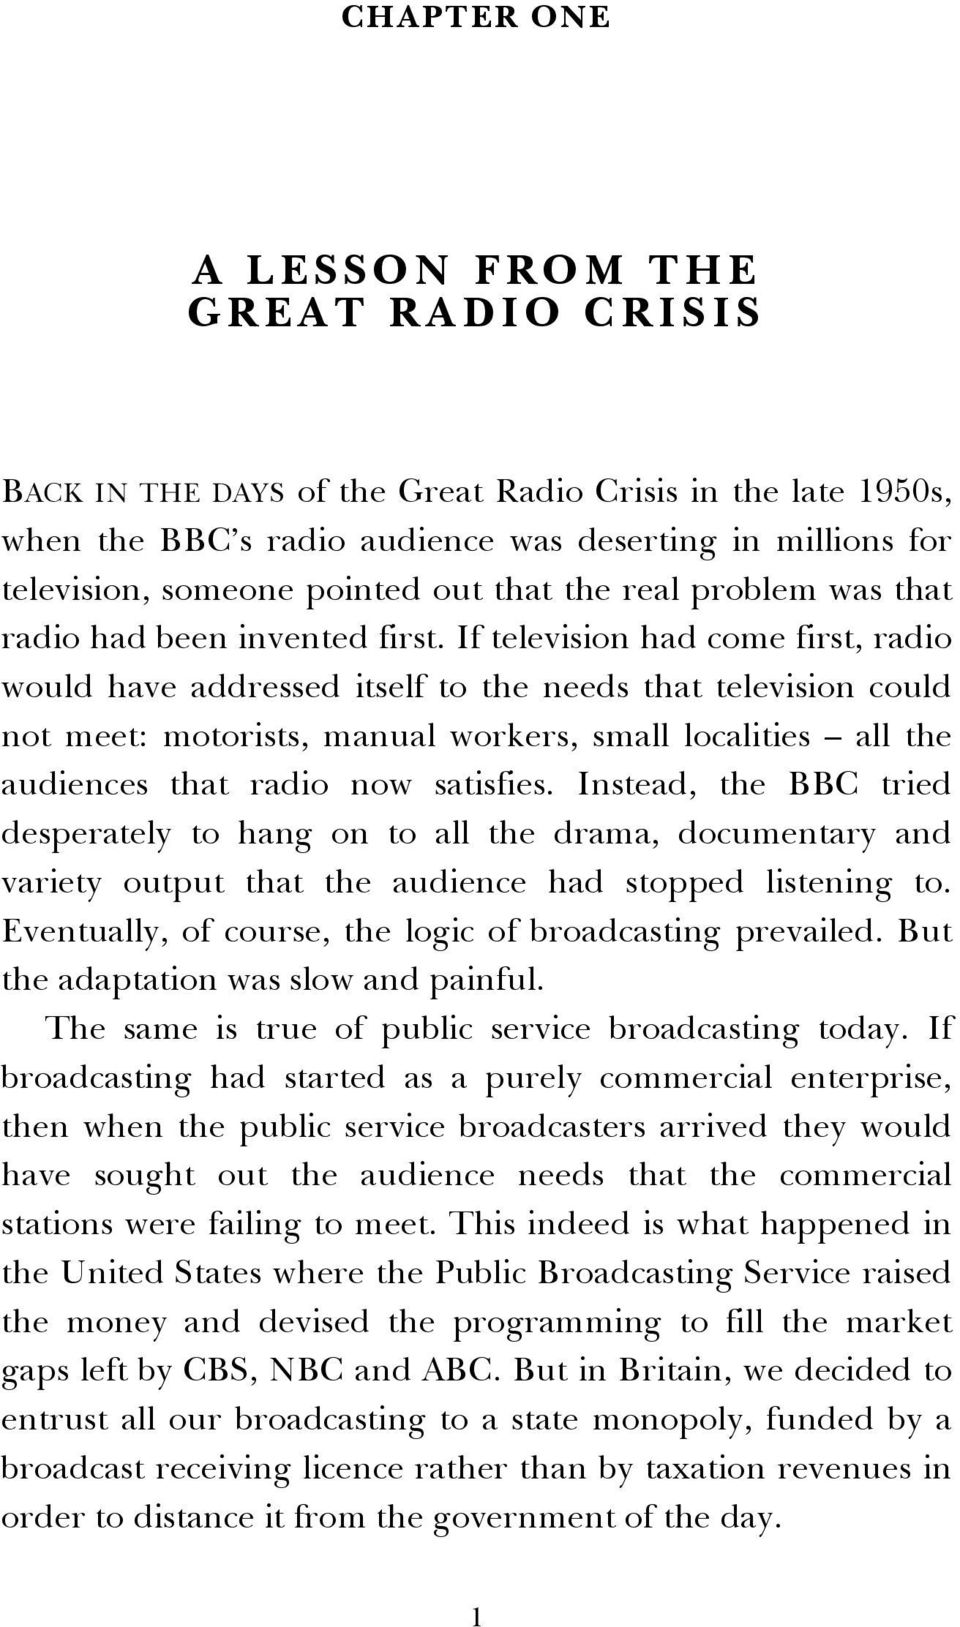 If television had come first, radio would have addressed itself to the needs that television could not meet: motorists, manual workers, small localities all the audiences that radio now satisfies.